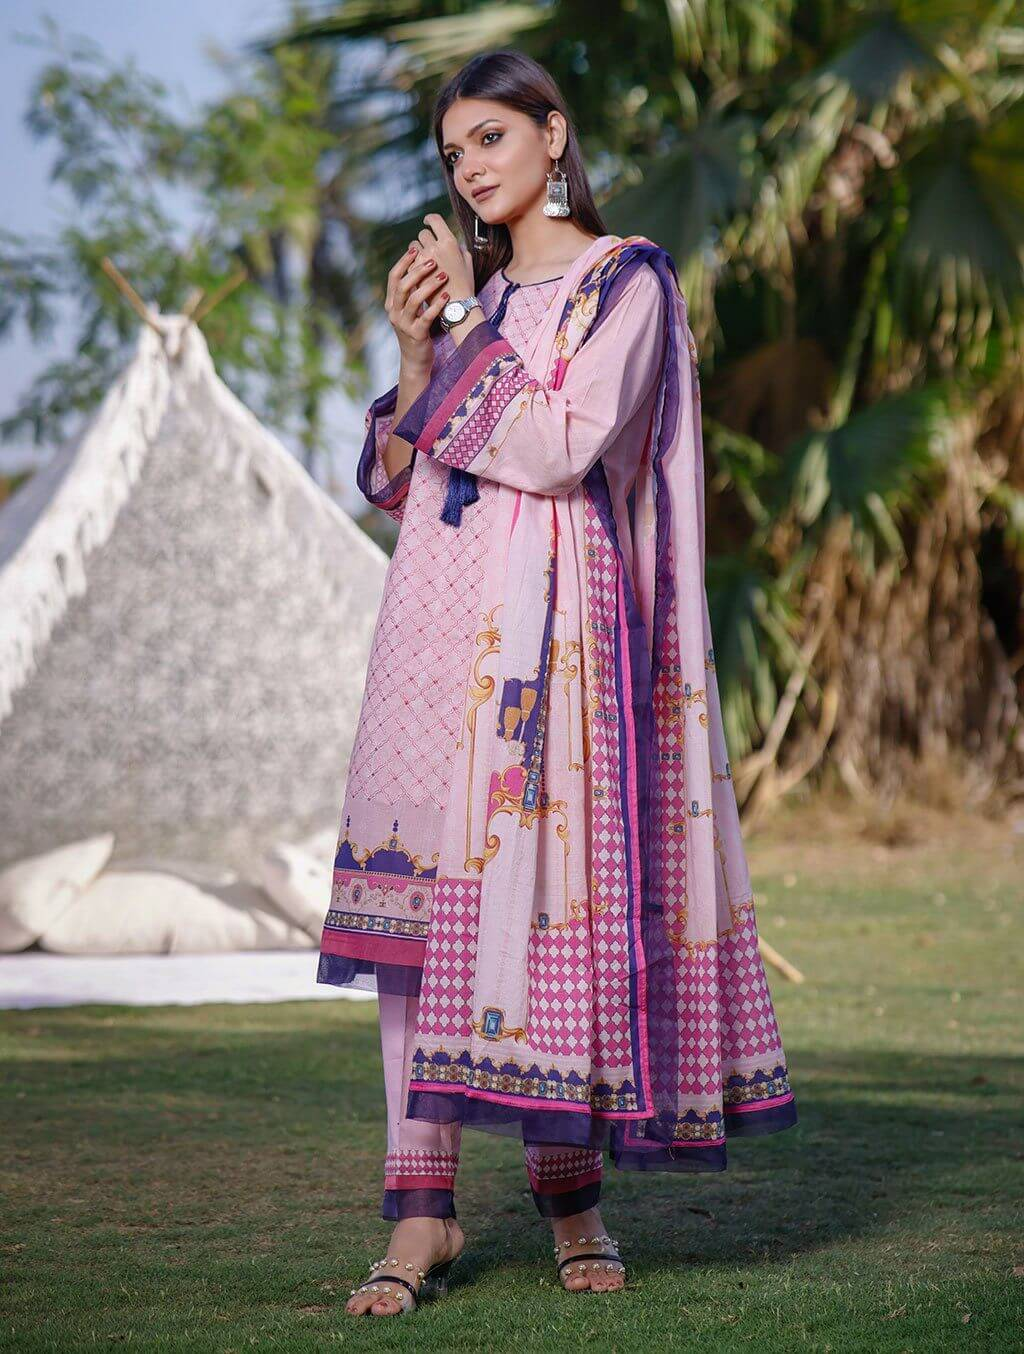 3 Piece Unstitched Printed Lawn Suit KL-1054 Khas Lawn 2021 - Volume 2 FASUNSLAD